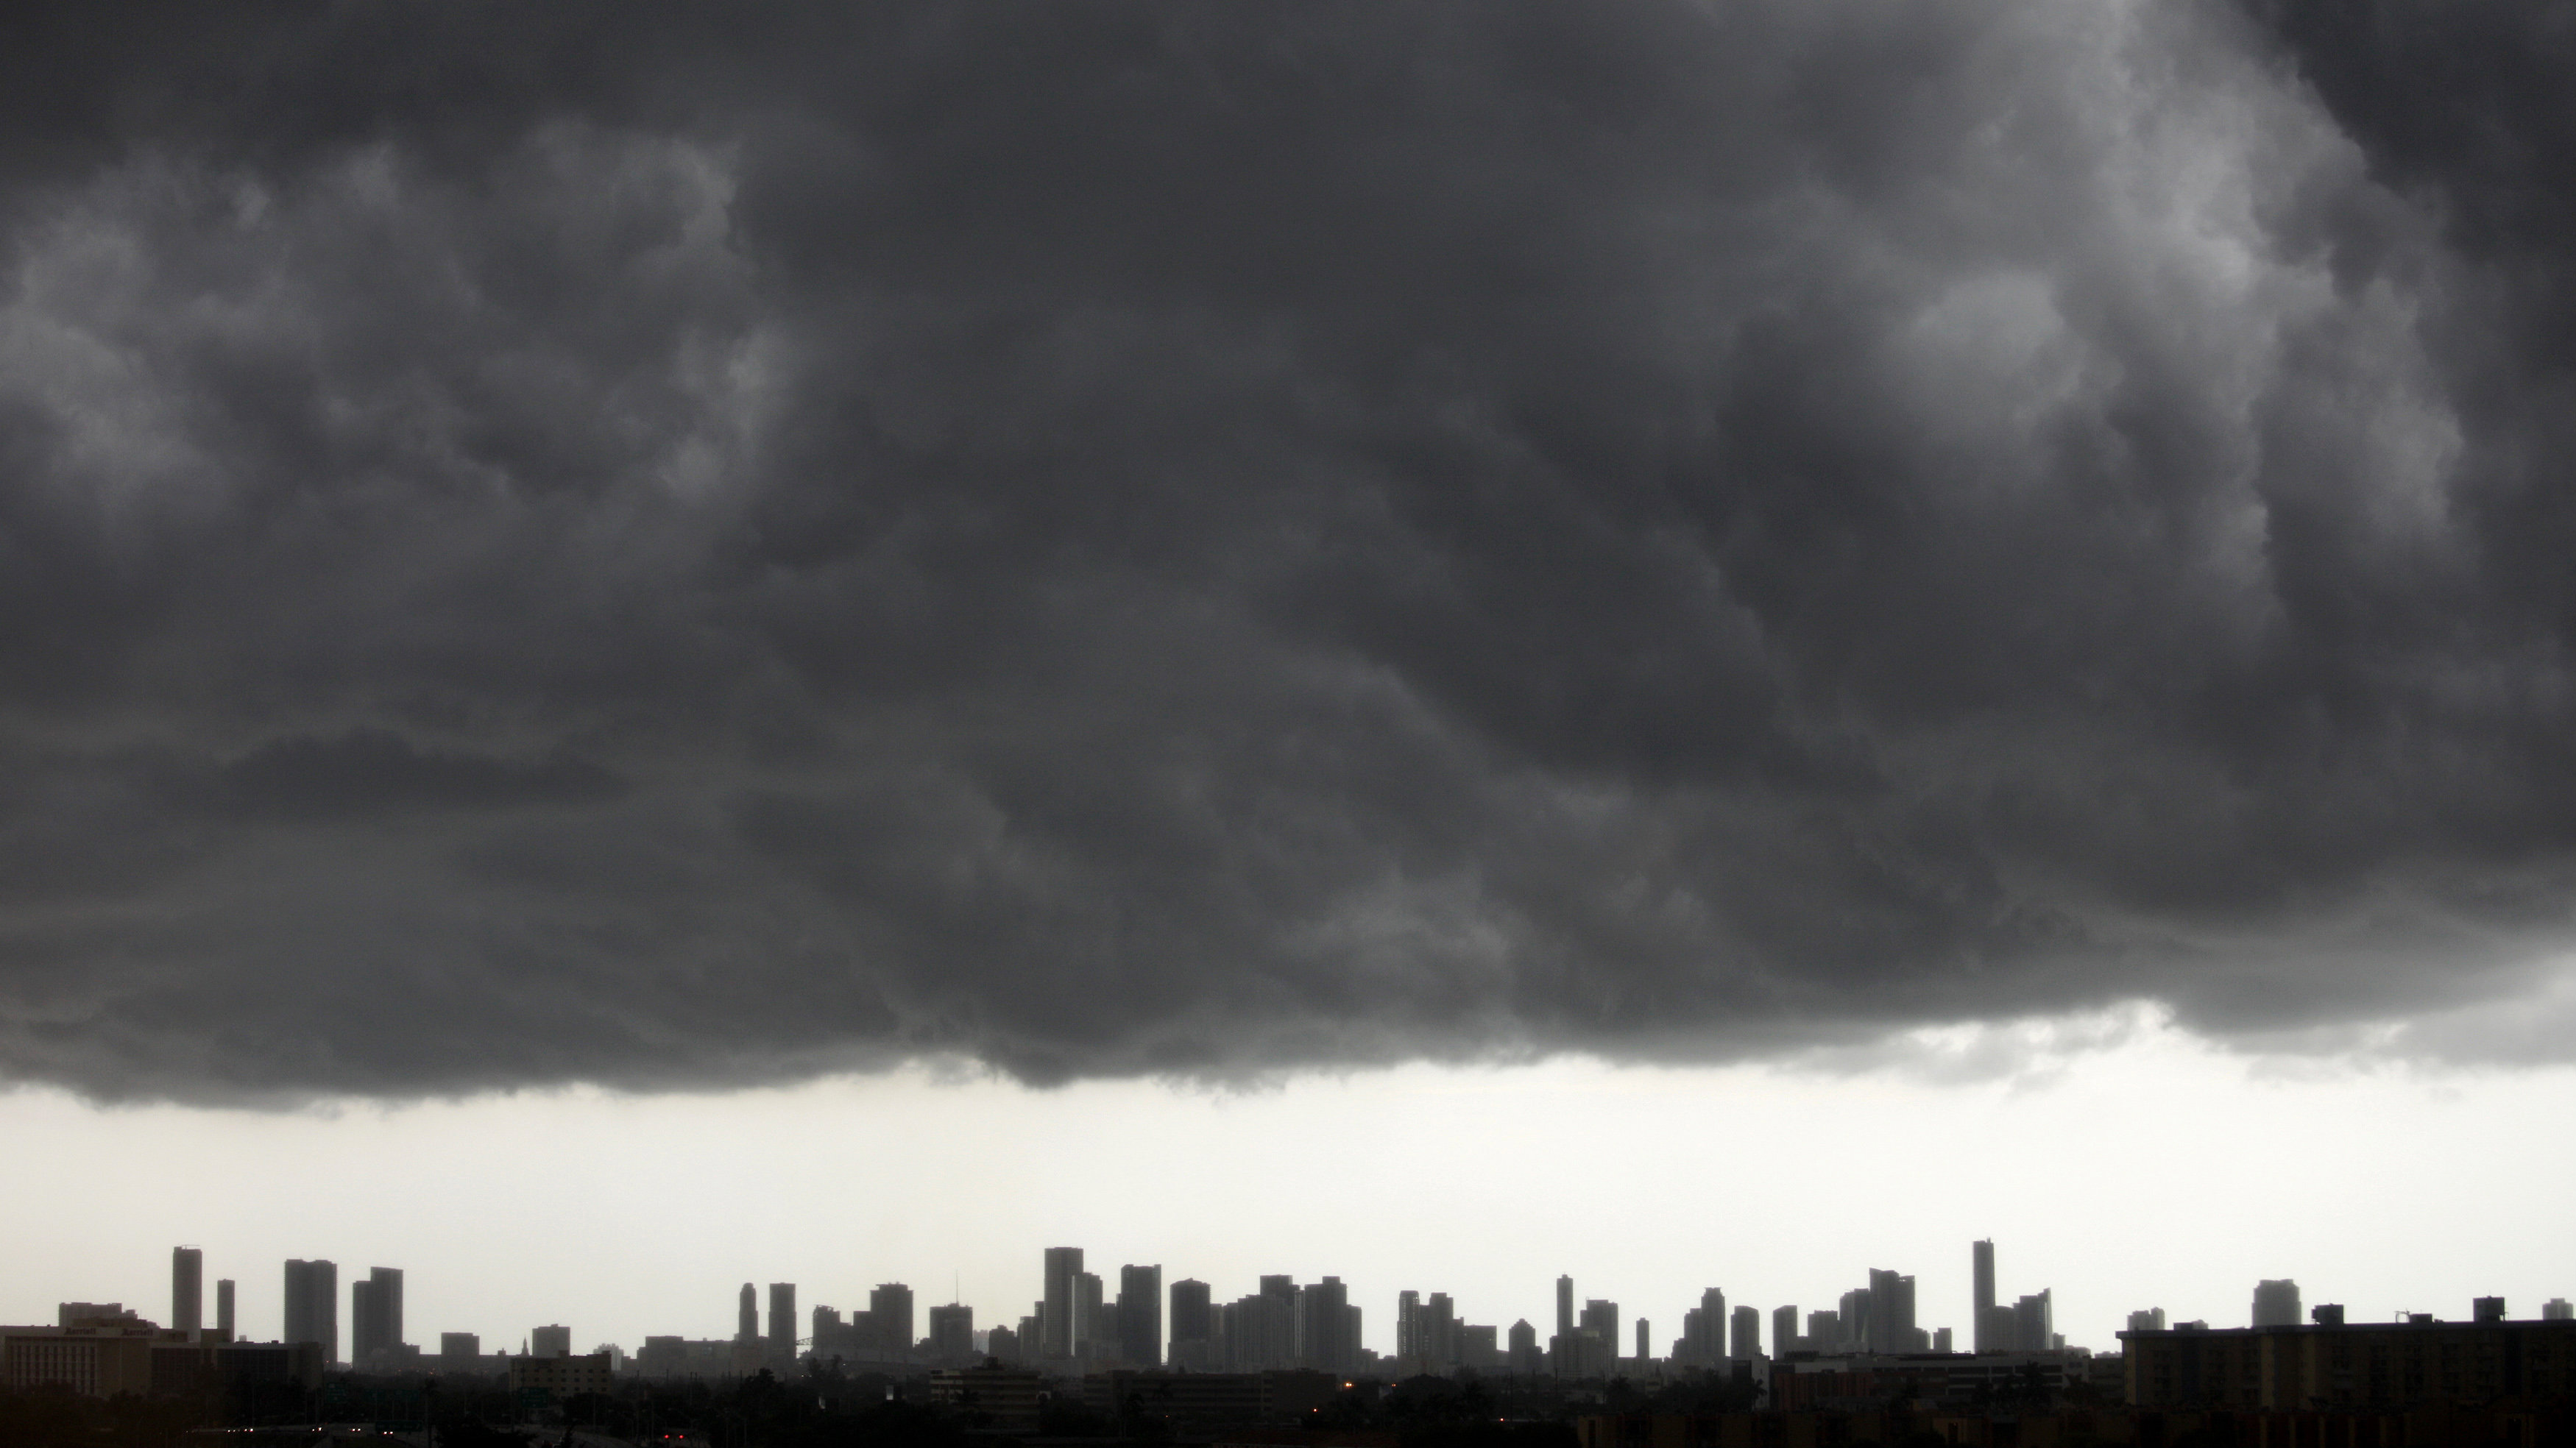 Dark clouds pass over downtown Miami, Florida August 15, 2010. An area of low pressure over southwest Georgia could move southward into Gulf of Mexico waters by early Monday and has a medium chance of becoming a tropical cyclone in the next 48 hours, the National Hurricane Center said on Sunday. The low pressure area was the remnant of Tropical Depression Five which dissipated on Wednesday in the Gulf. The U.S. Gulf of Mexico is home to about 30 percent of U.S. oil production, 11 percent of natural gas production, and more than 43 percent of U.S. refinery capacity.